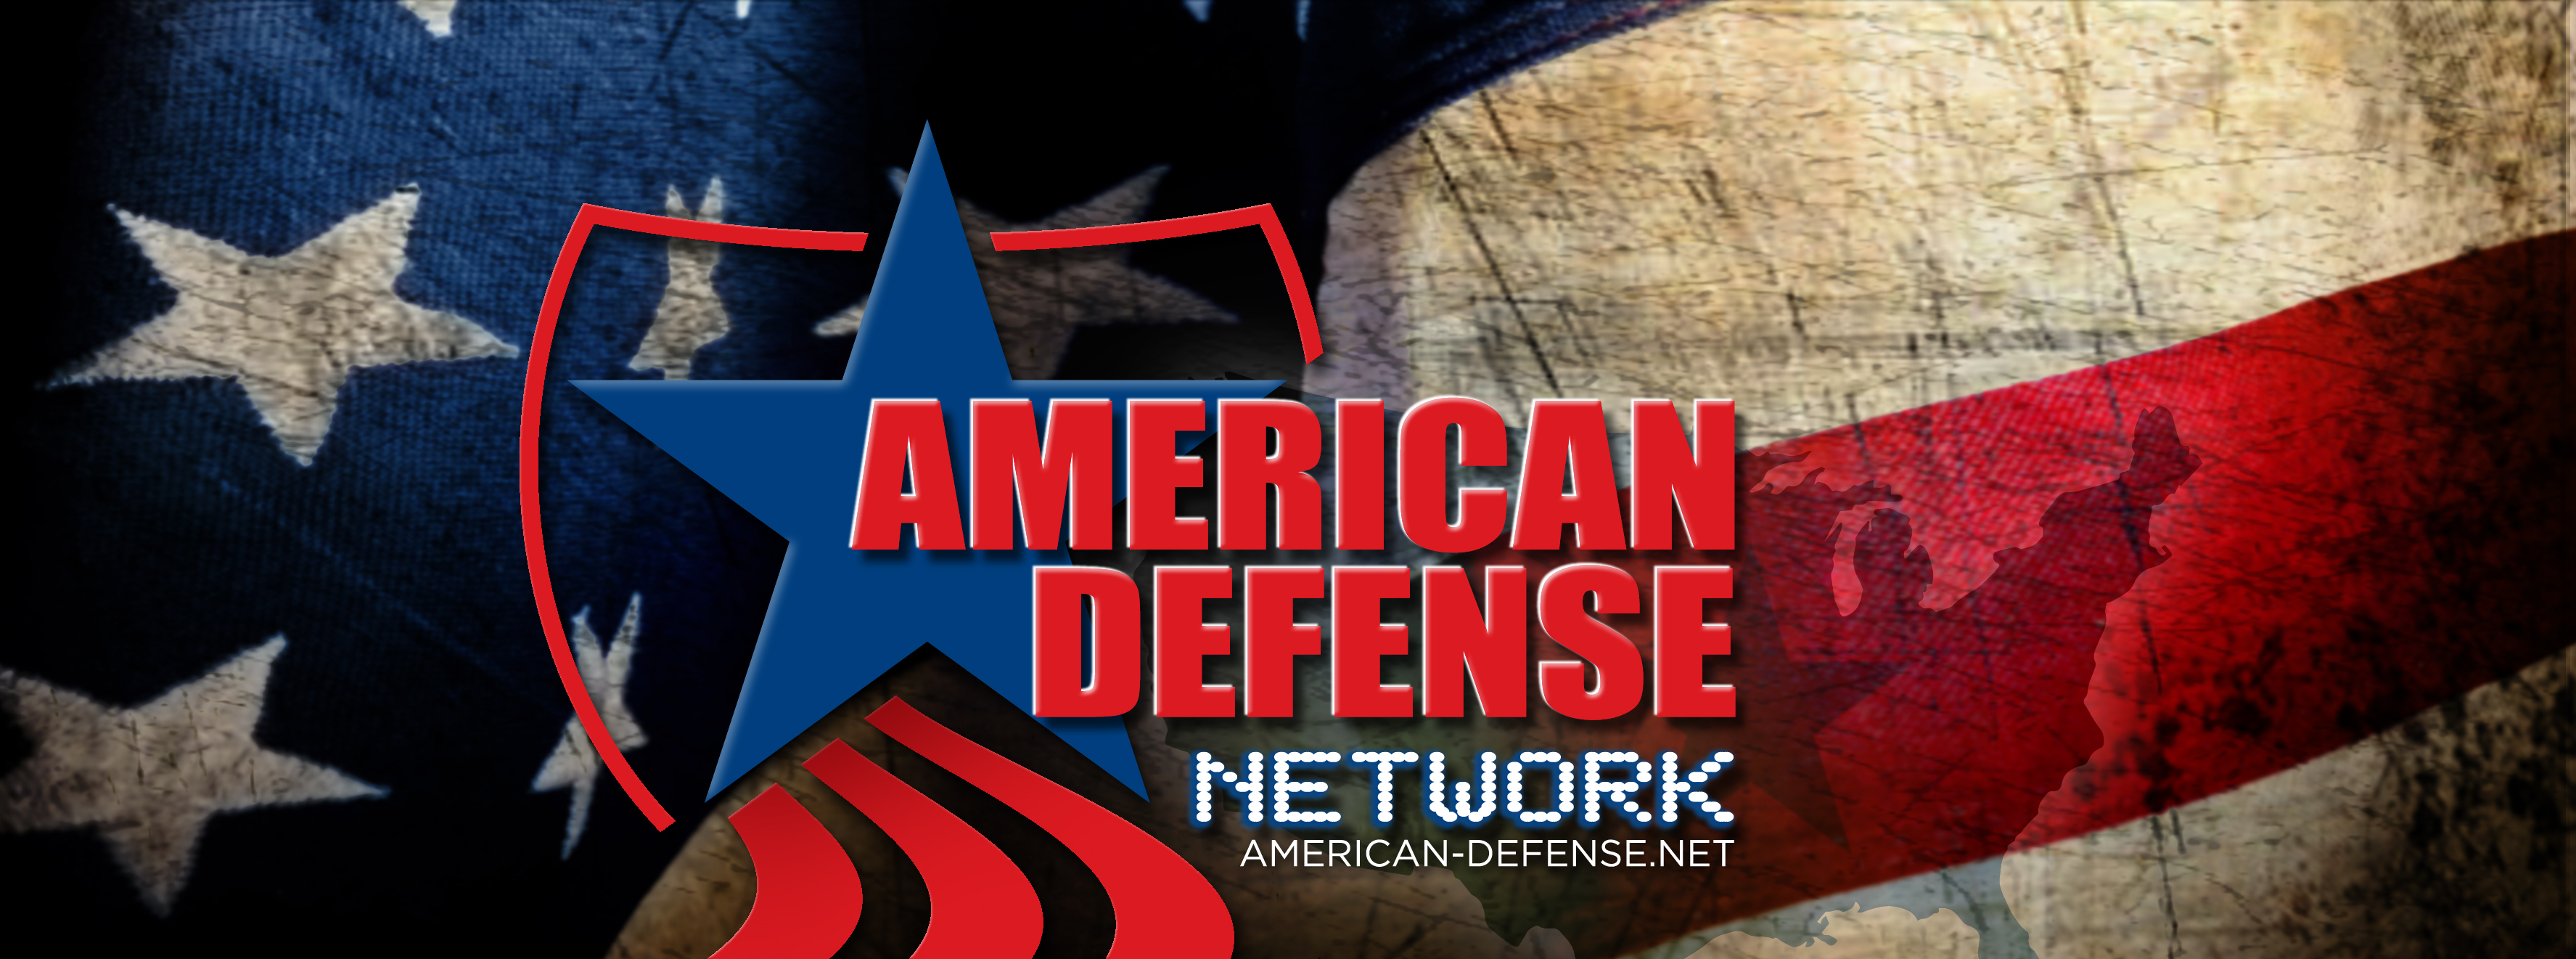 ADnet Close to Announcing new organization to America